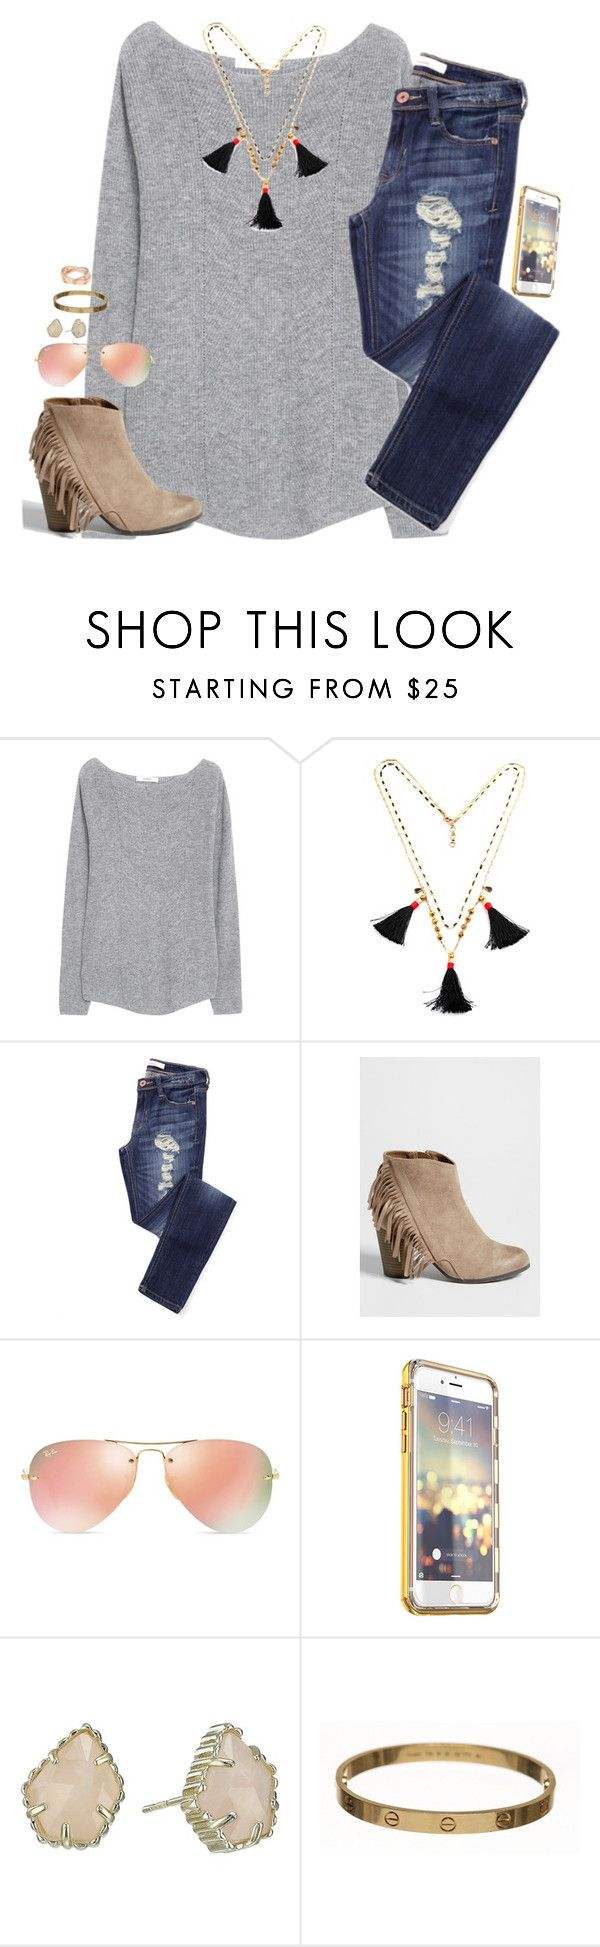 """""have you prayed about it as much as you've talked about it?"" -Matthew 21:22"" by kaley-ii ❤ liked on Polyvore featuring MANGO, maurices, Ray-Ban, Kendra Scott and Cartier"